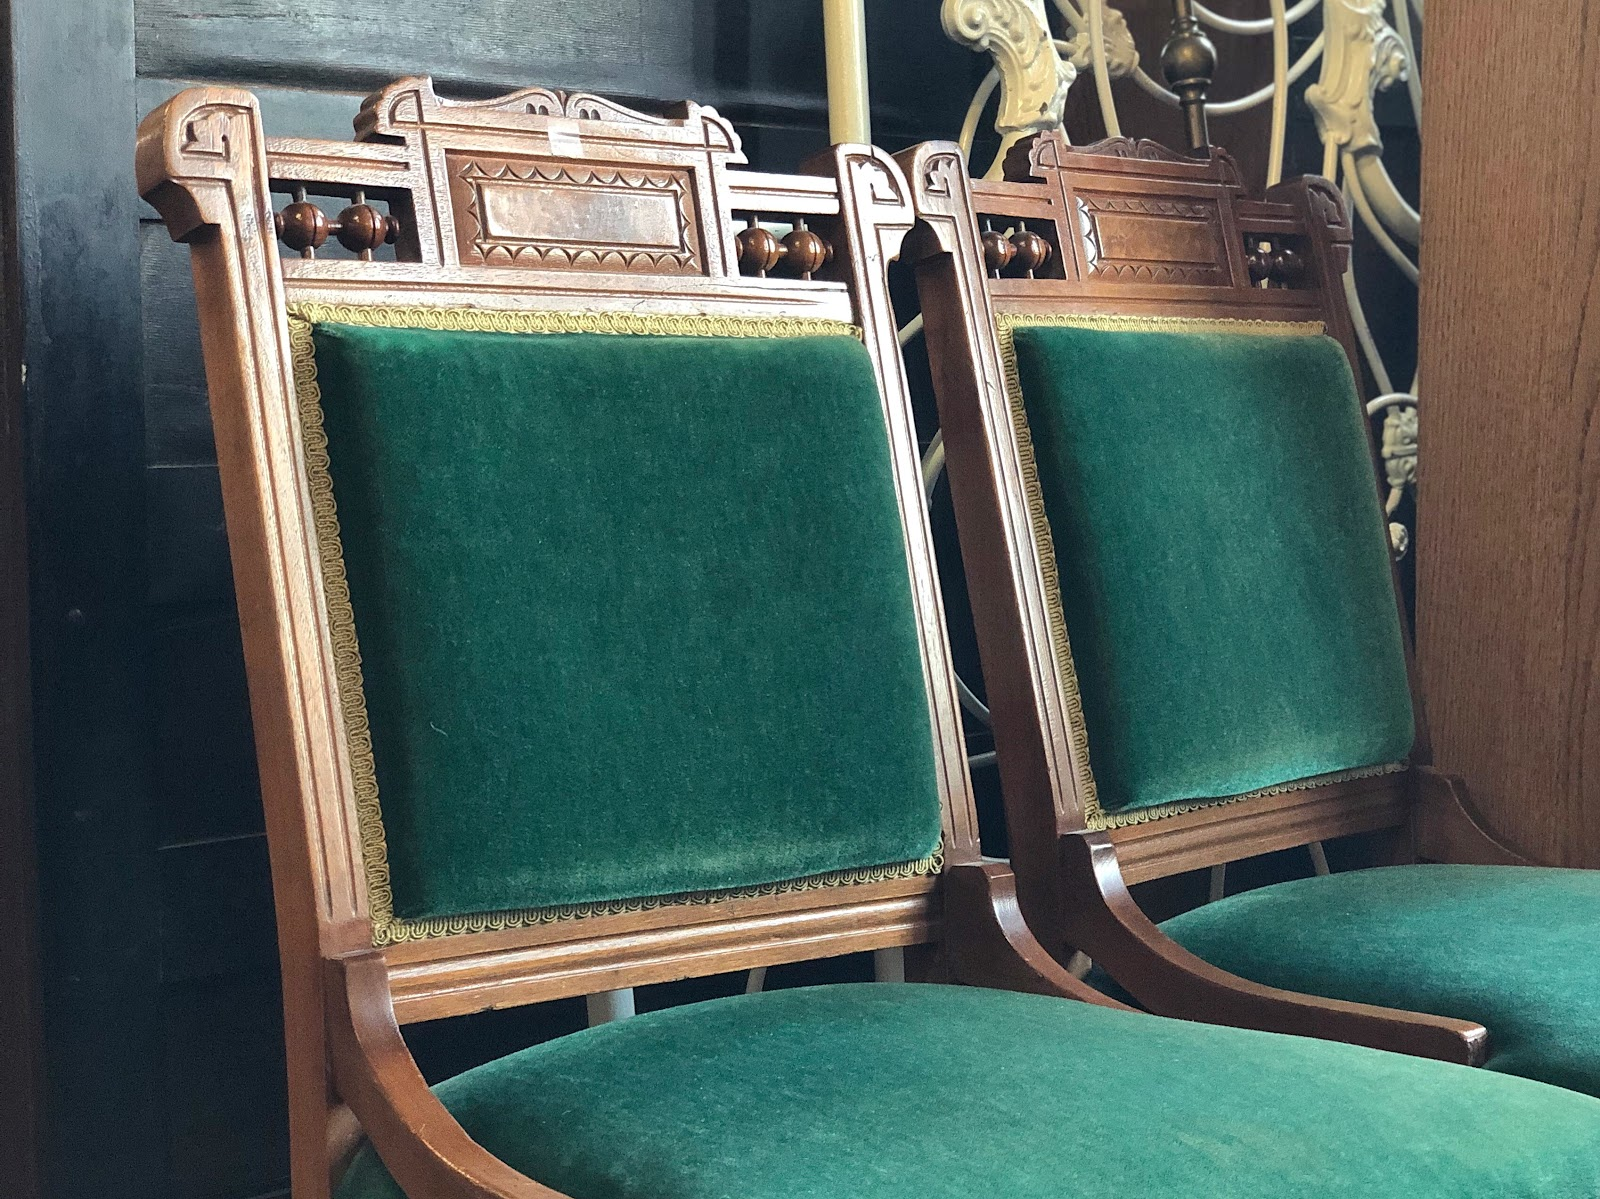 Two timeless chairs made out of wood and green fabric used as an eco-friendly furniture choice.